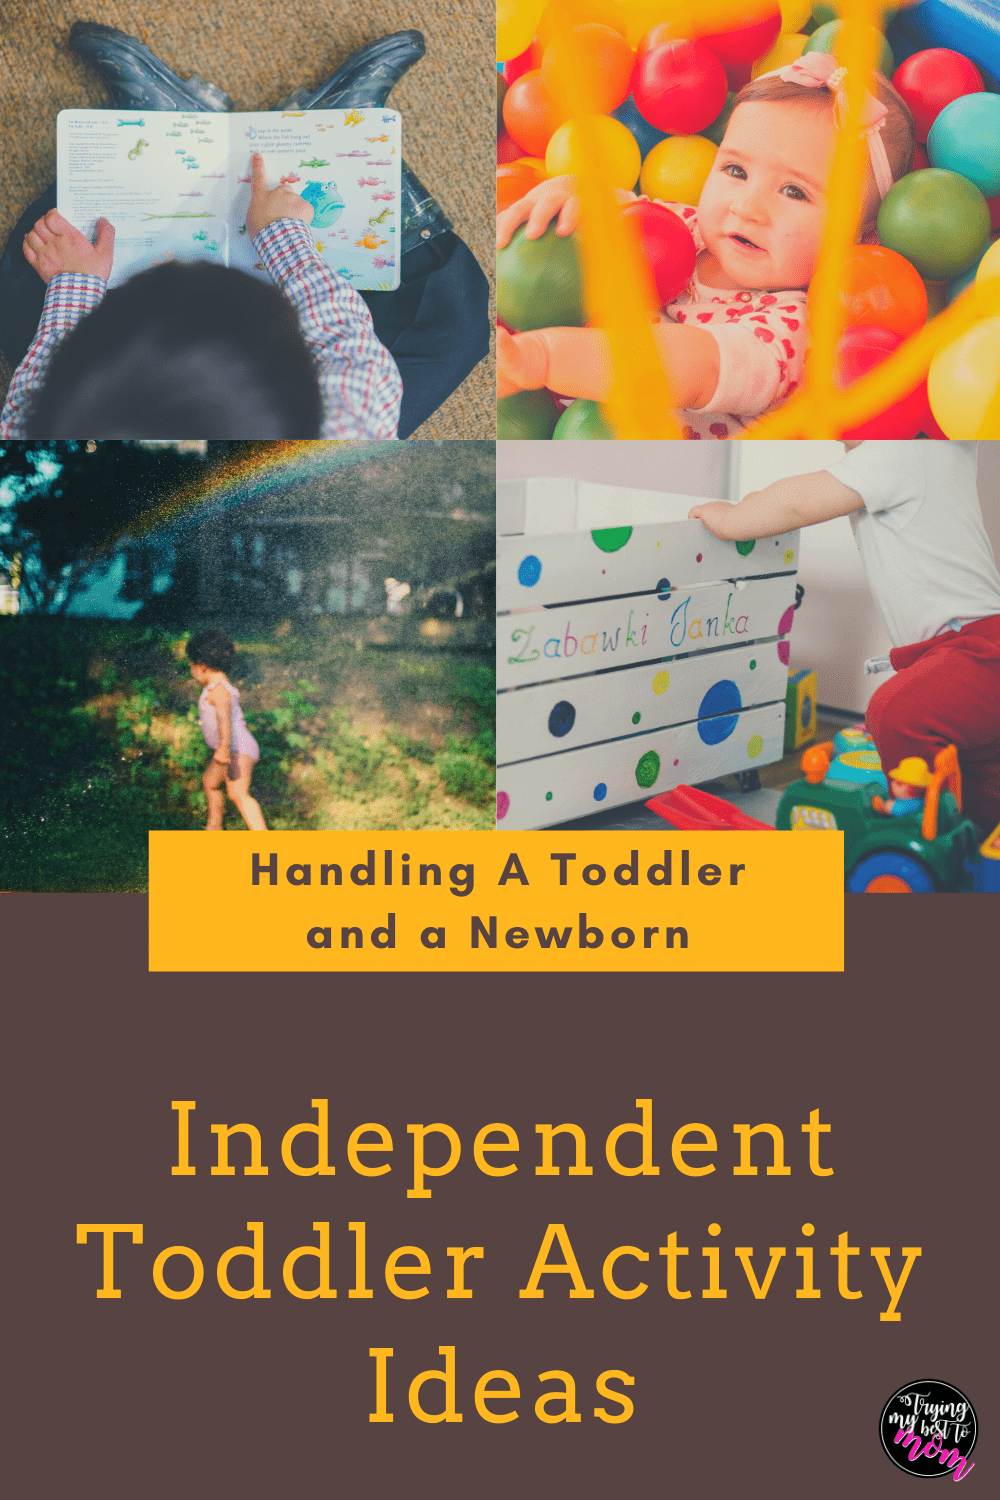 Independent Toddler Play Activities